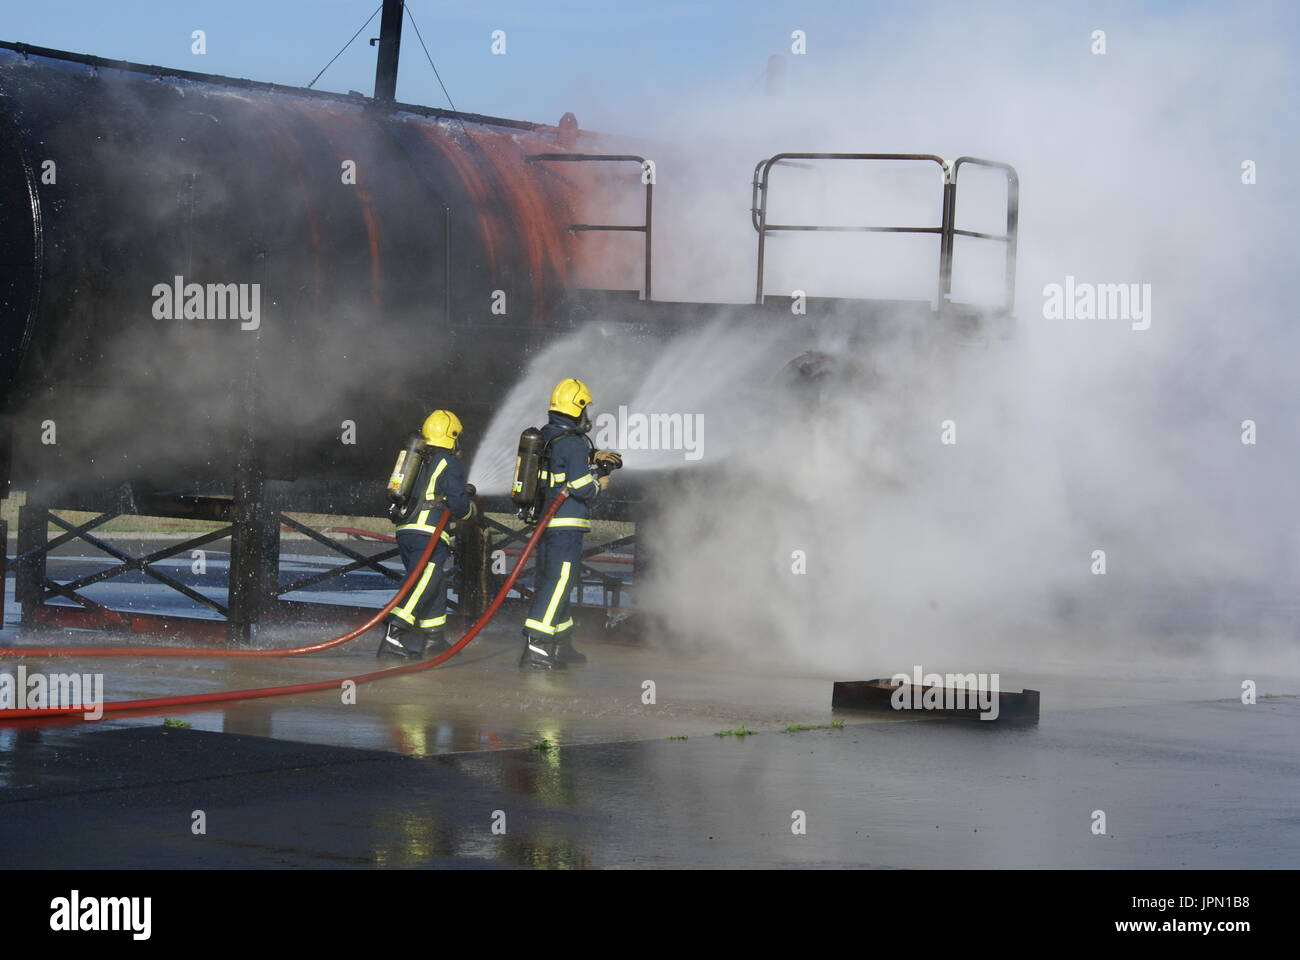 fire-fighter, fire and rescue service - Stock Image